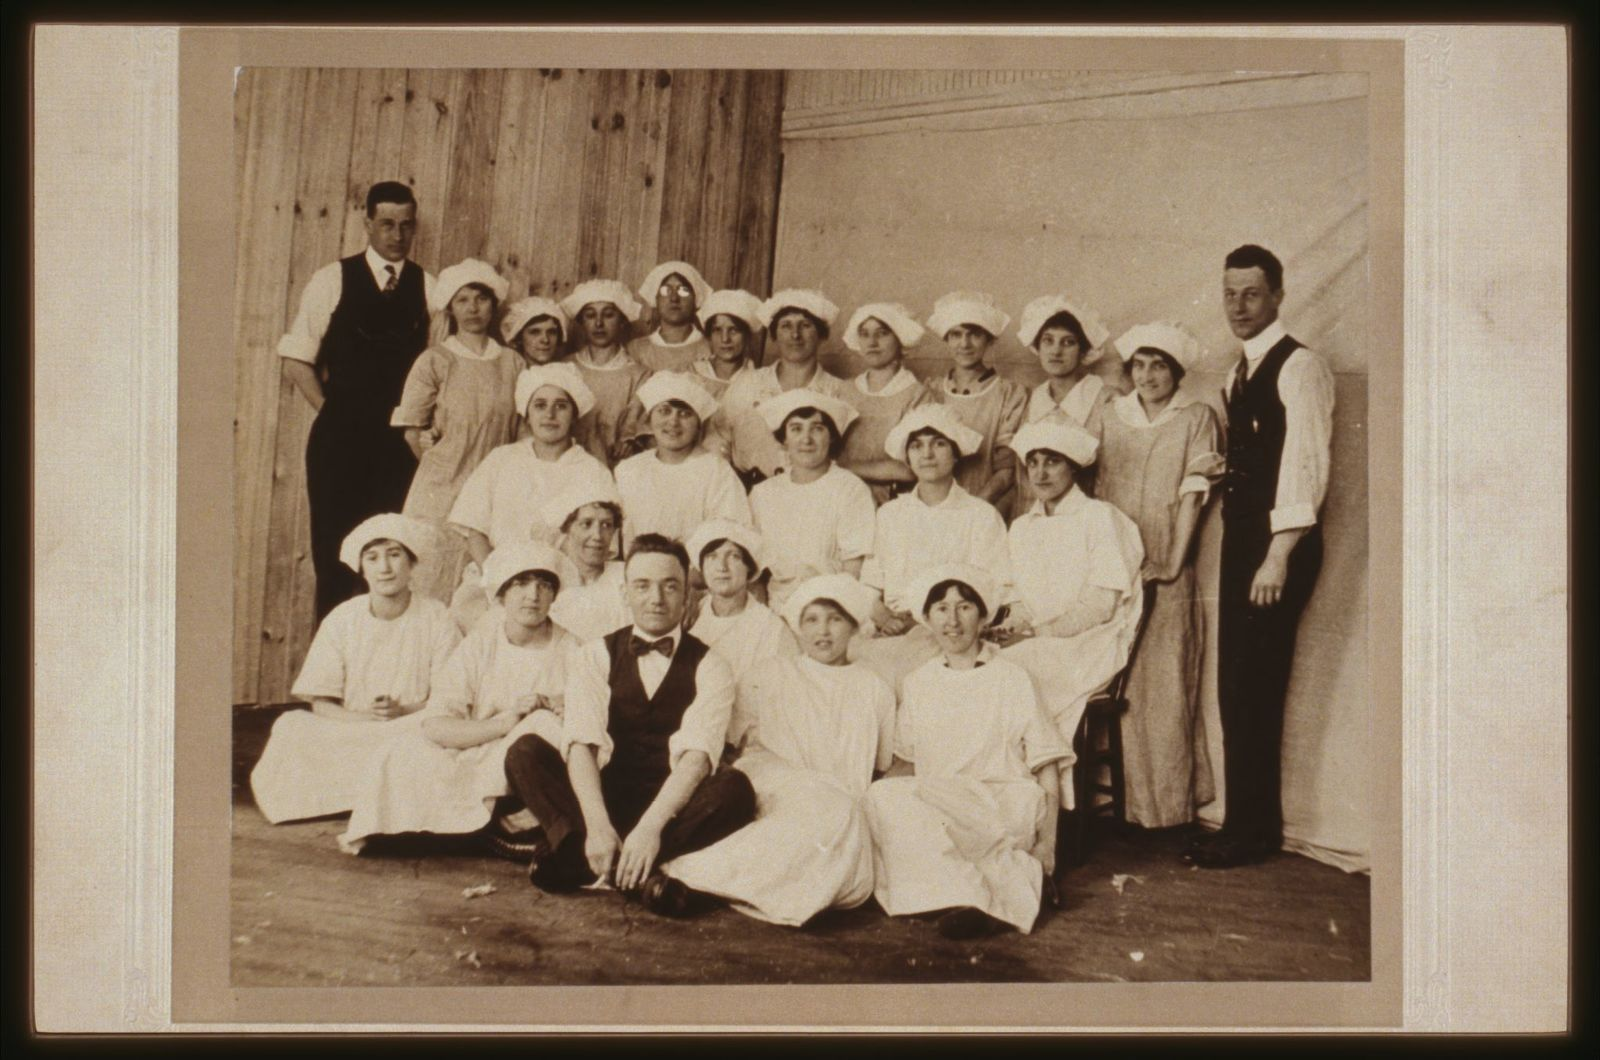 Formal portrait of workers and managers at Newberger's Towel Factory, Paterson, ca. 1918.